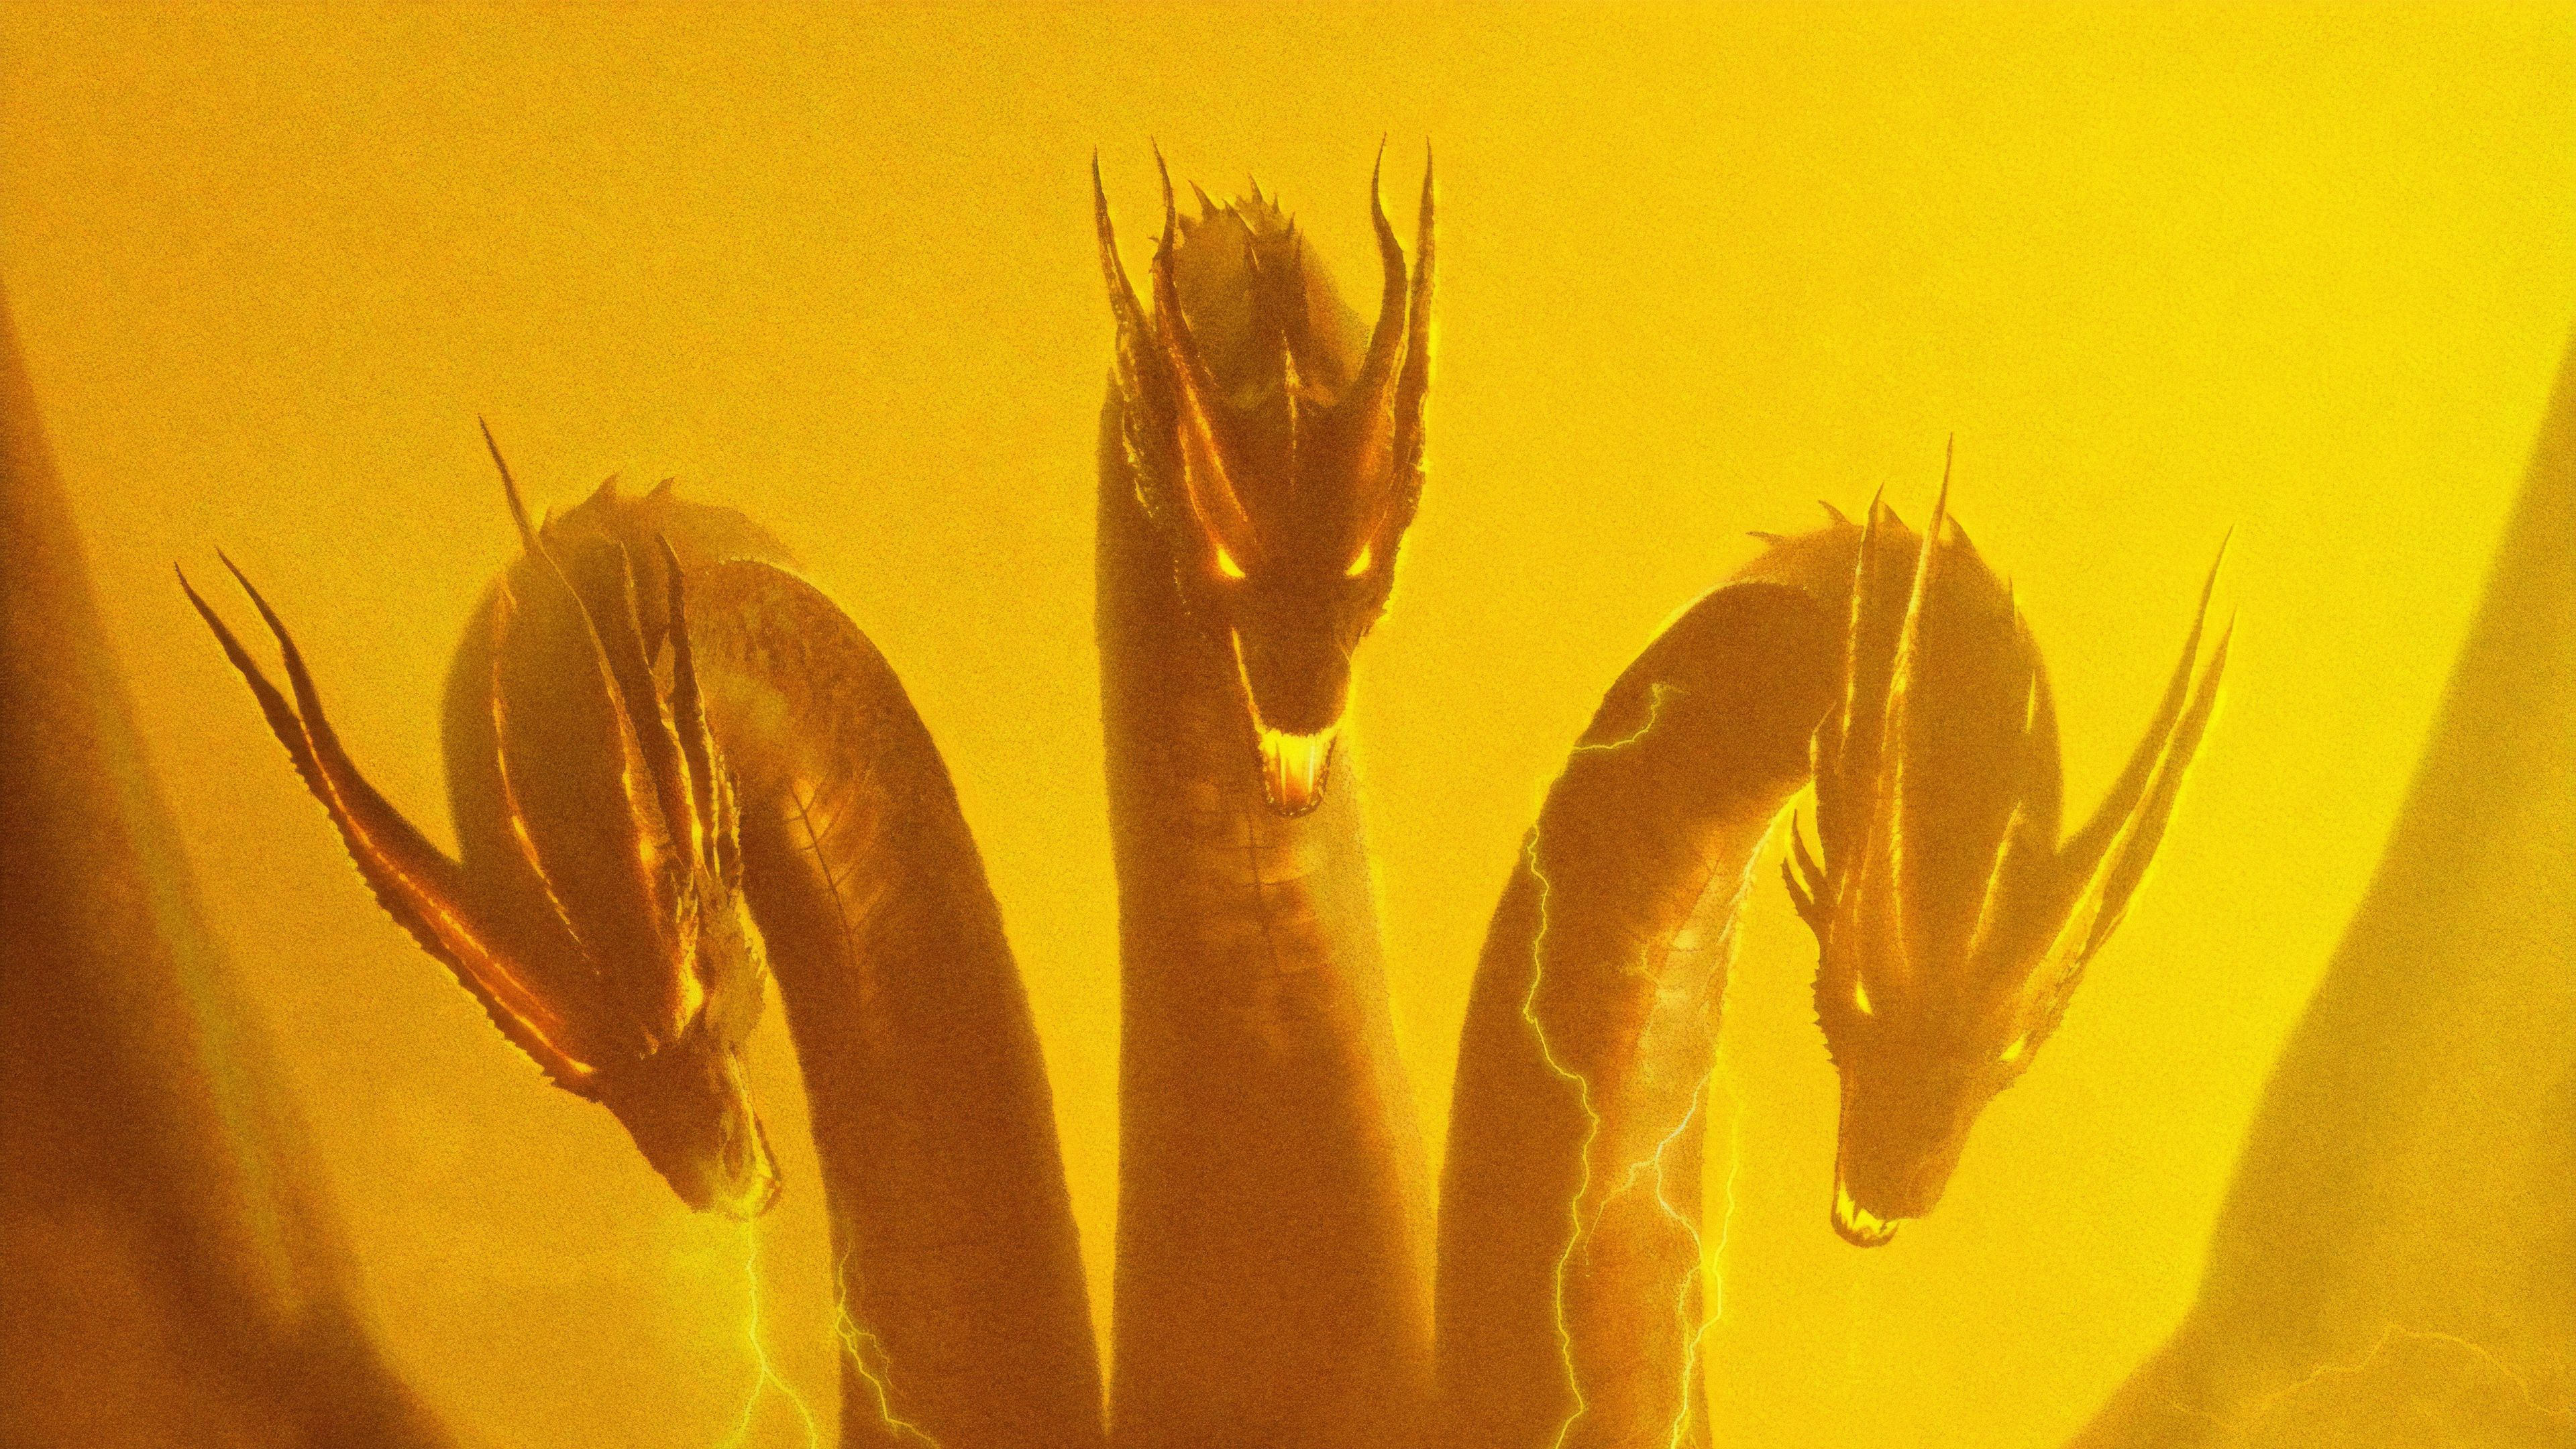 Ghidorah Godzilla King Of The Monsters 4k poster wallpapers 3840x2160